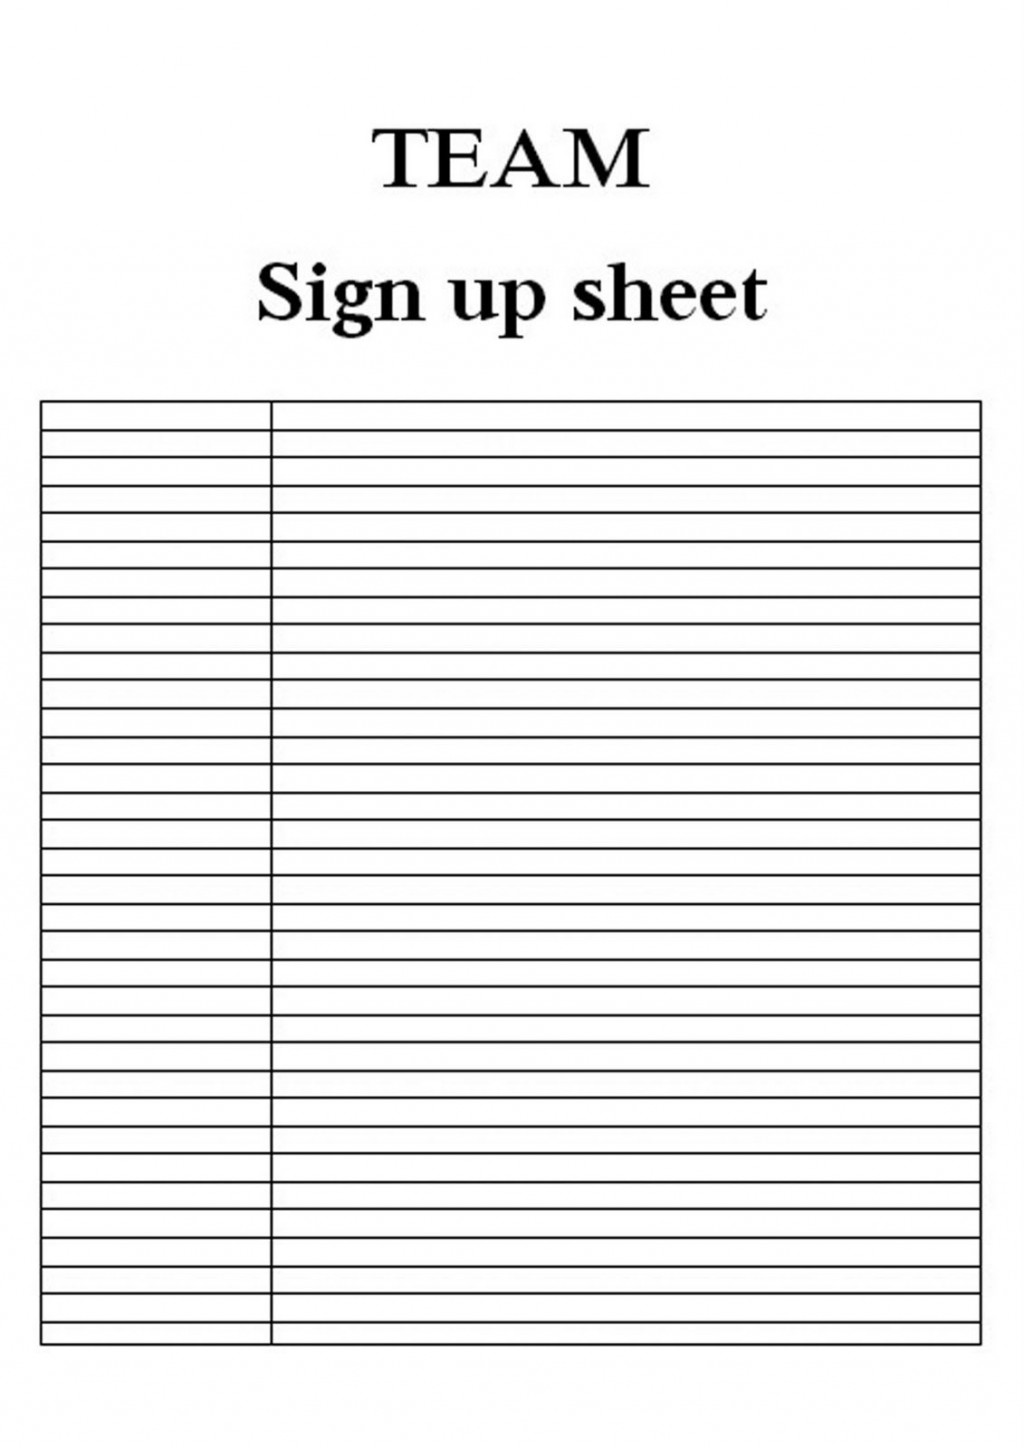 008 Wonderful Free Sign Up Sheet Template High Def  In Word Printable ExcelLarge